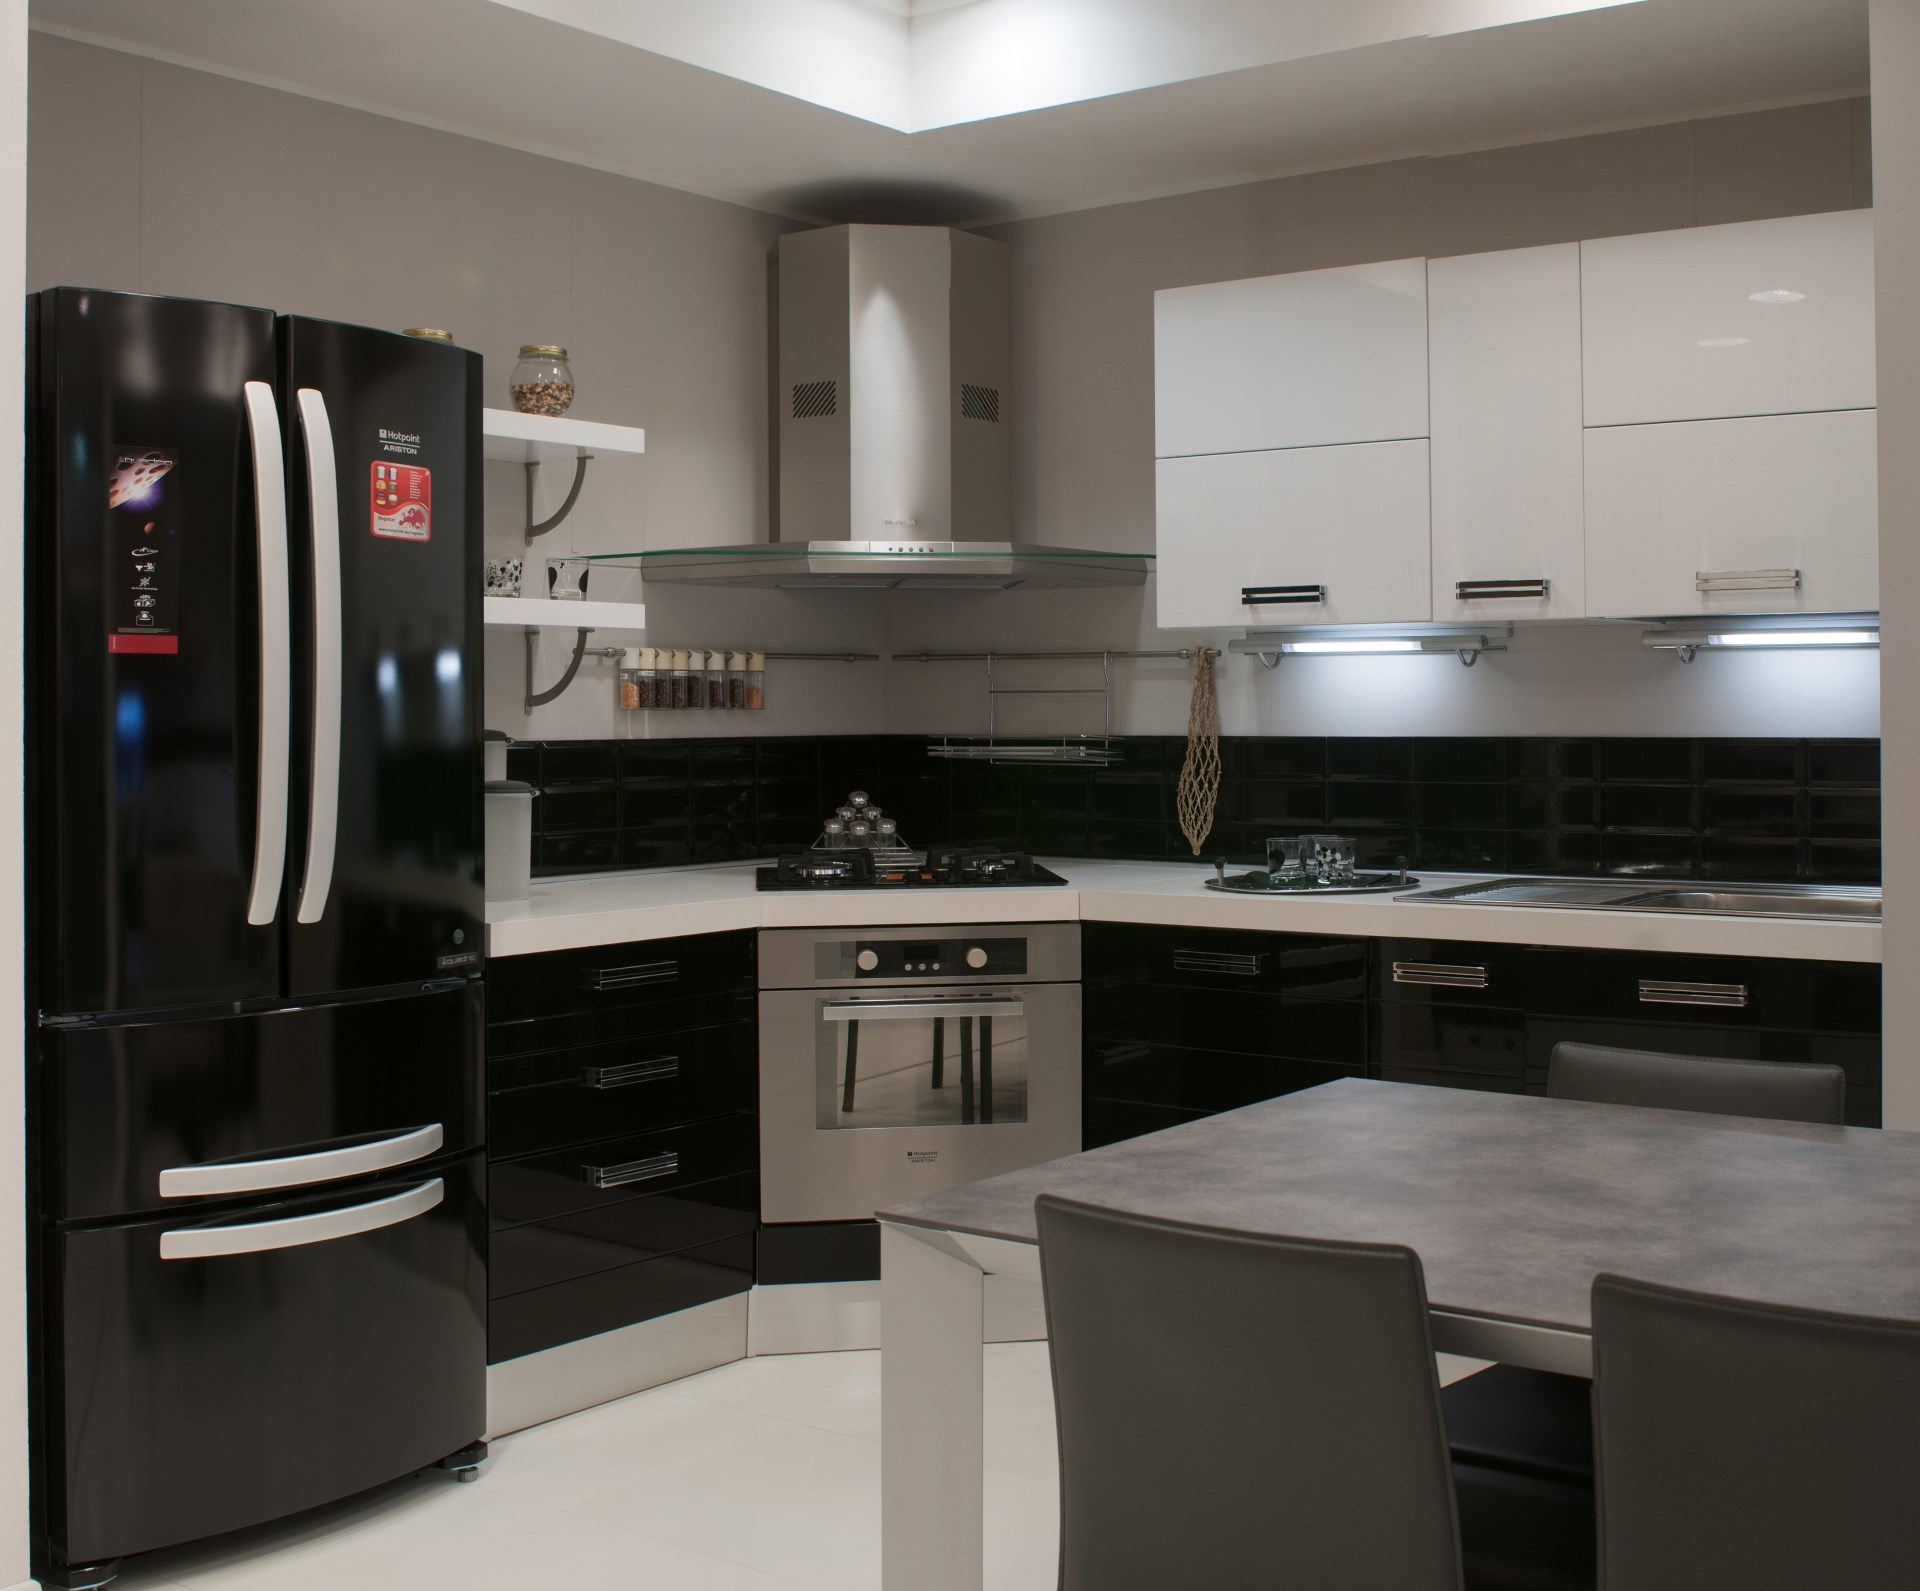 Cucine Cappa Ad Angolo hood for kitchen elikor: customer reviews about kitchen